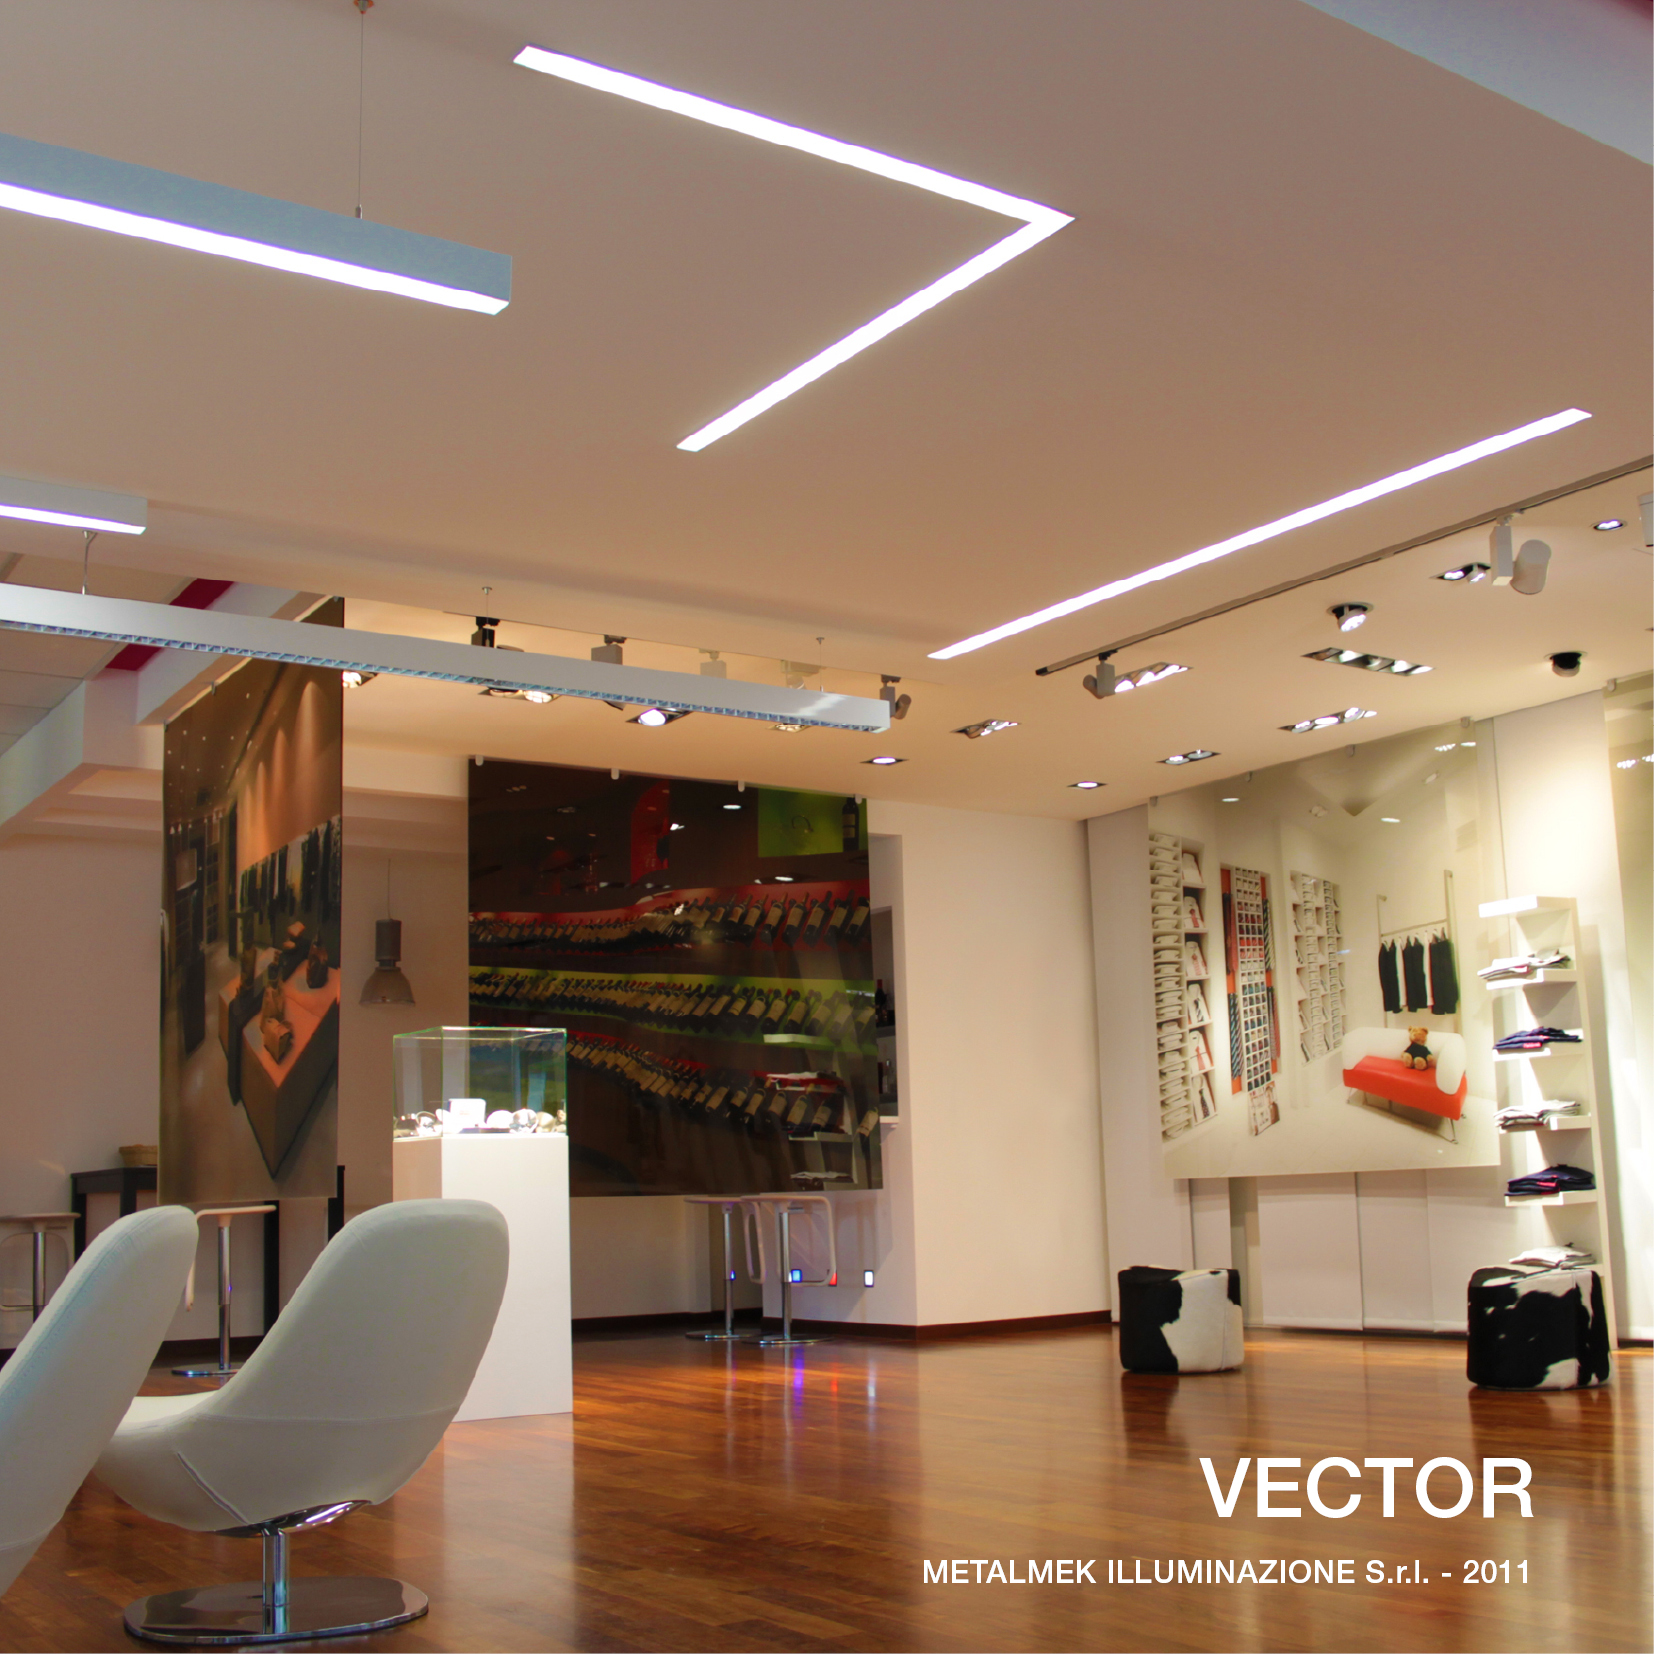 Extruded aluminium built-in lamp VECTOR by METALMEK ILLUMINAZIONE